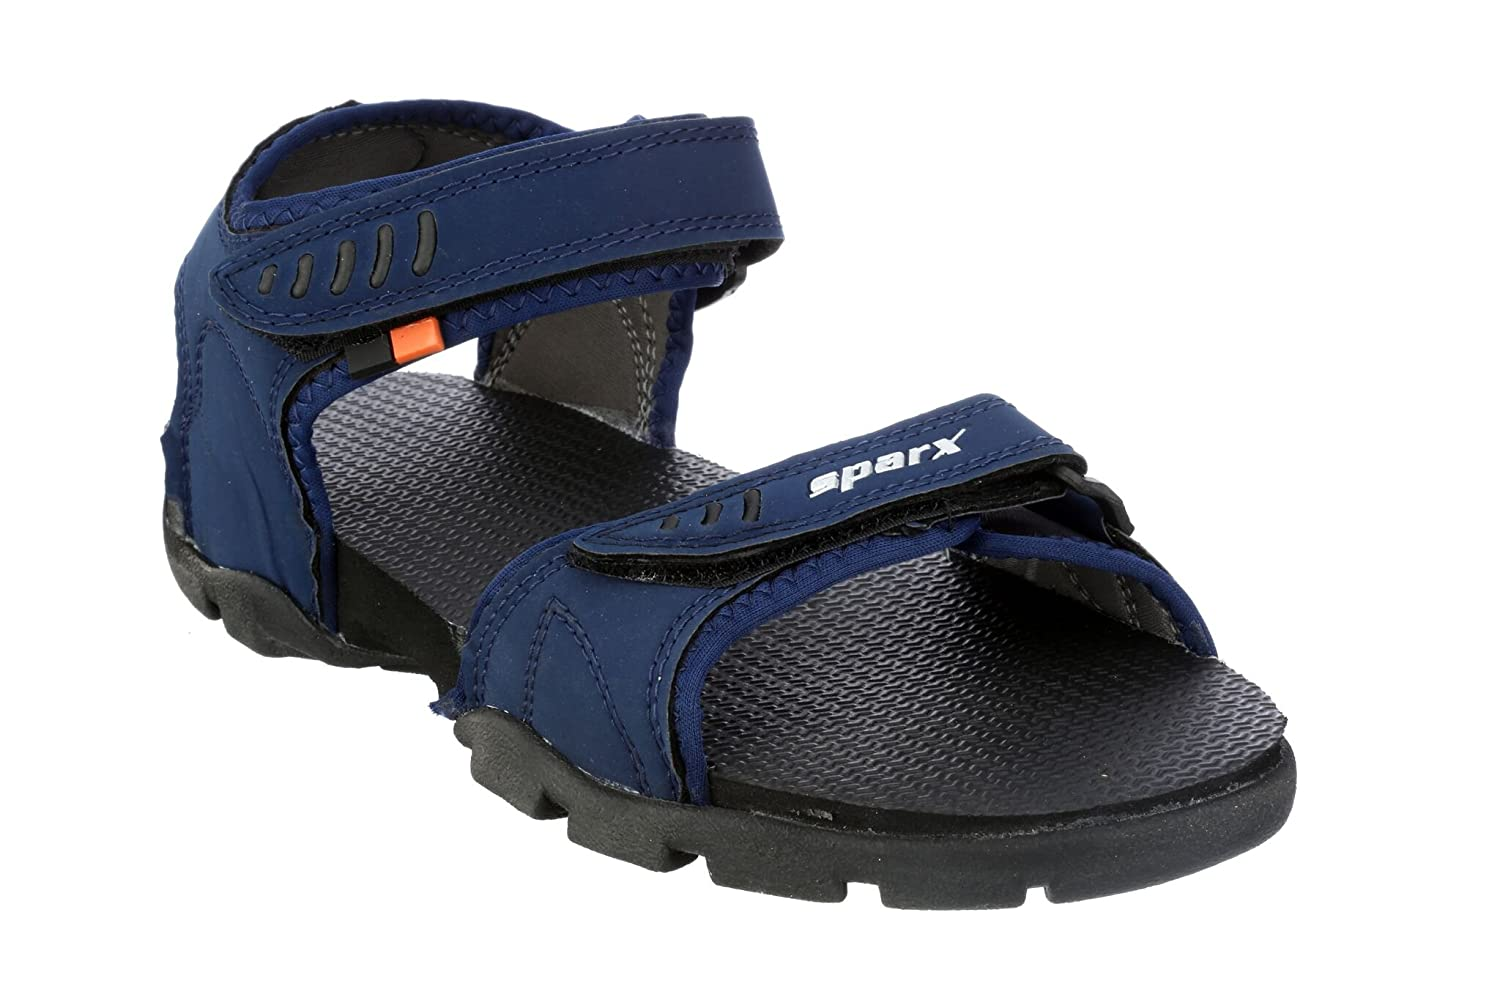 74d59708a5d2 Sandals For Men  Buy Mens  Sandals   Floaters online at best prices ...